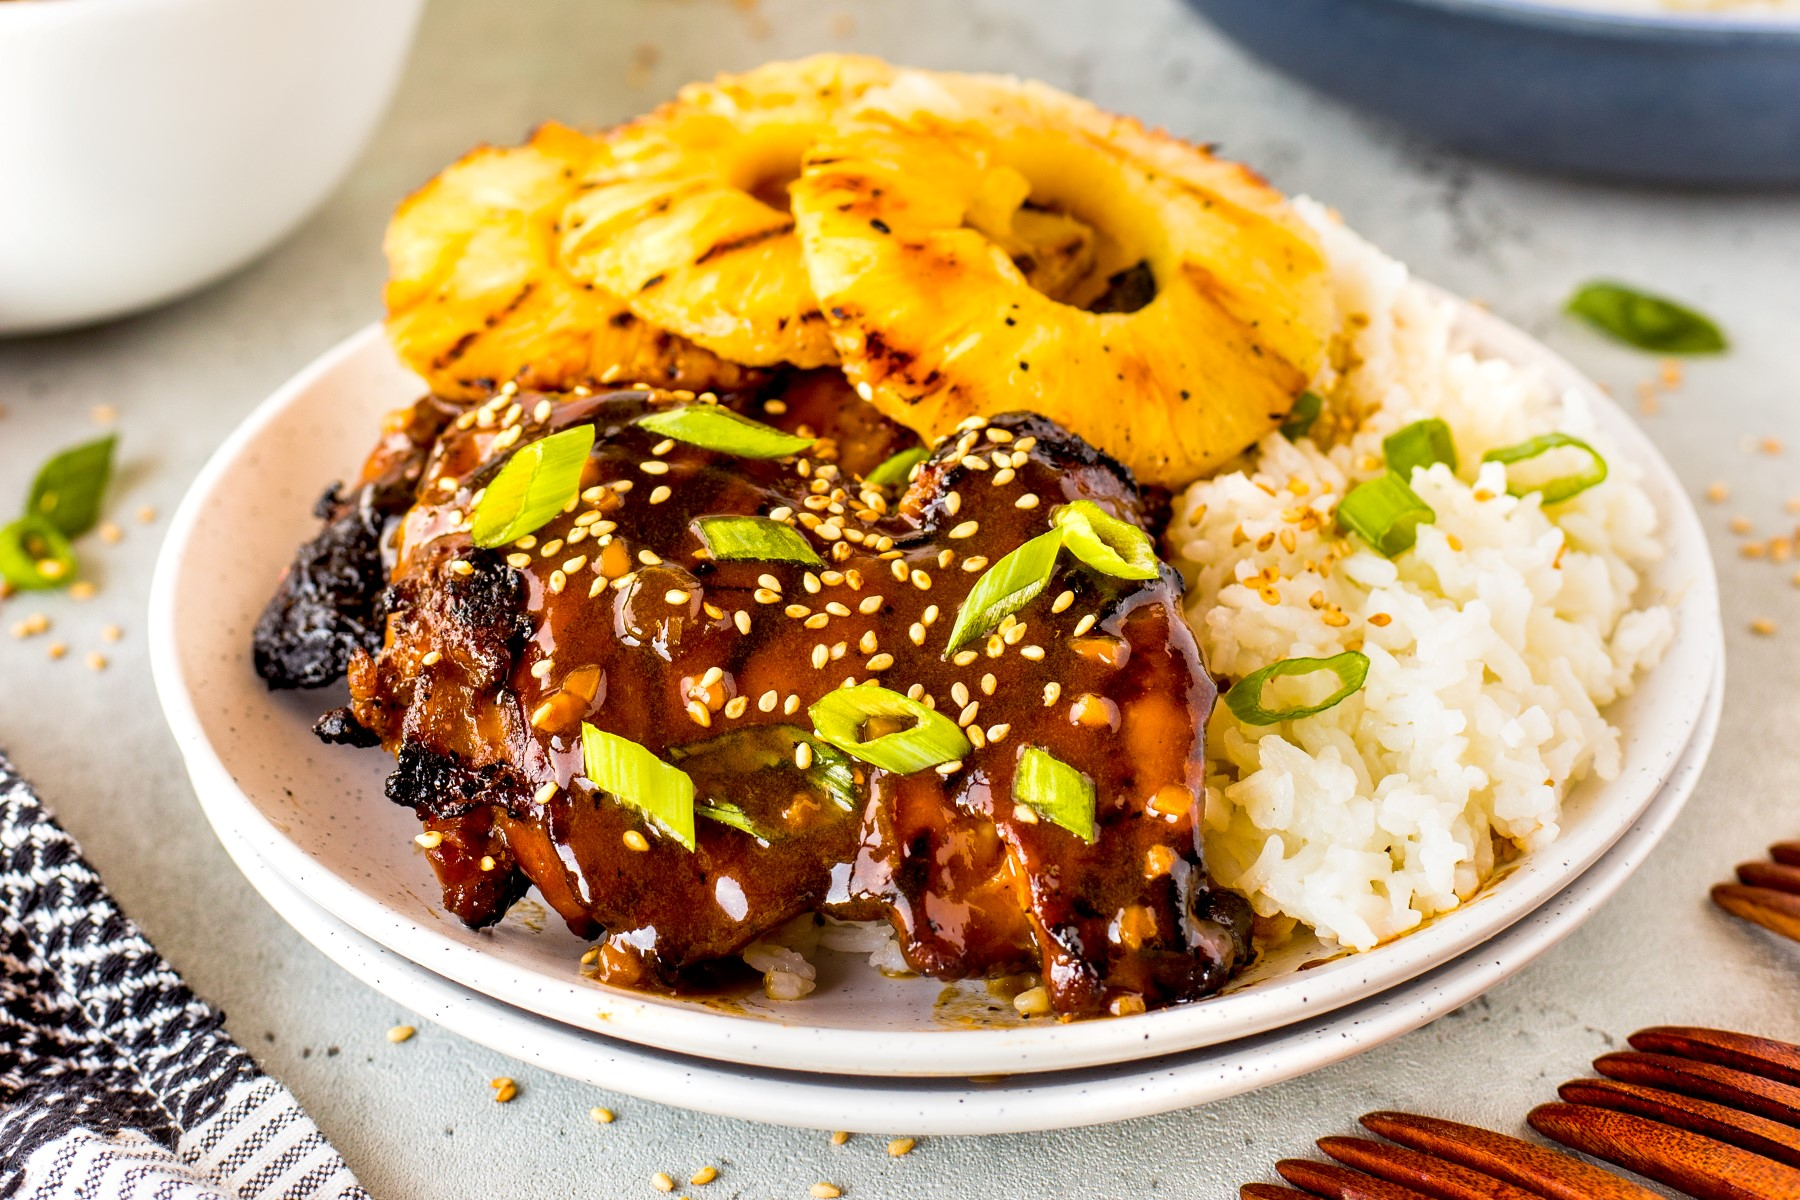 Hawaiian grilled chicken thighs on a white plate served with grilled pineapple rings and rice.